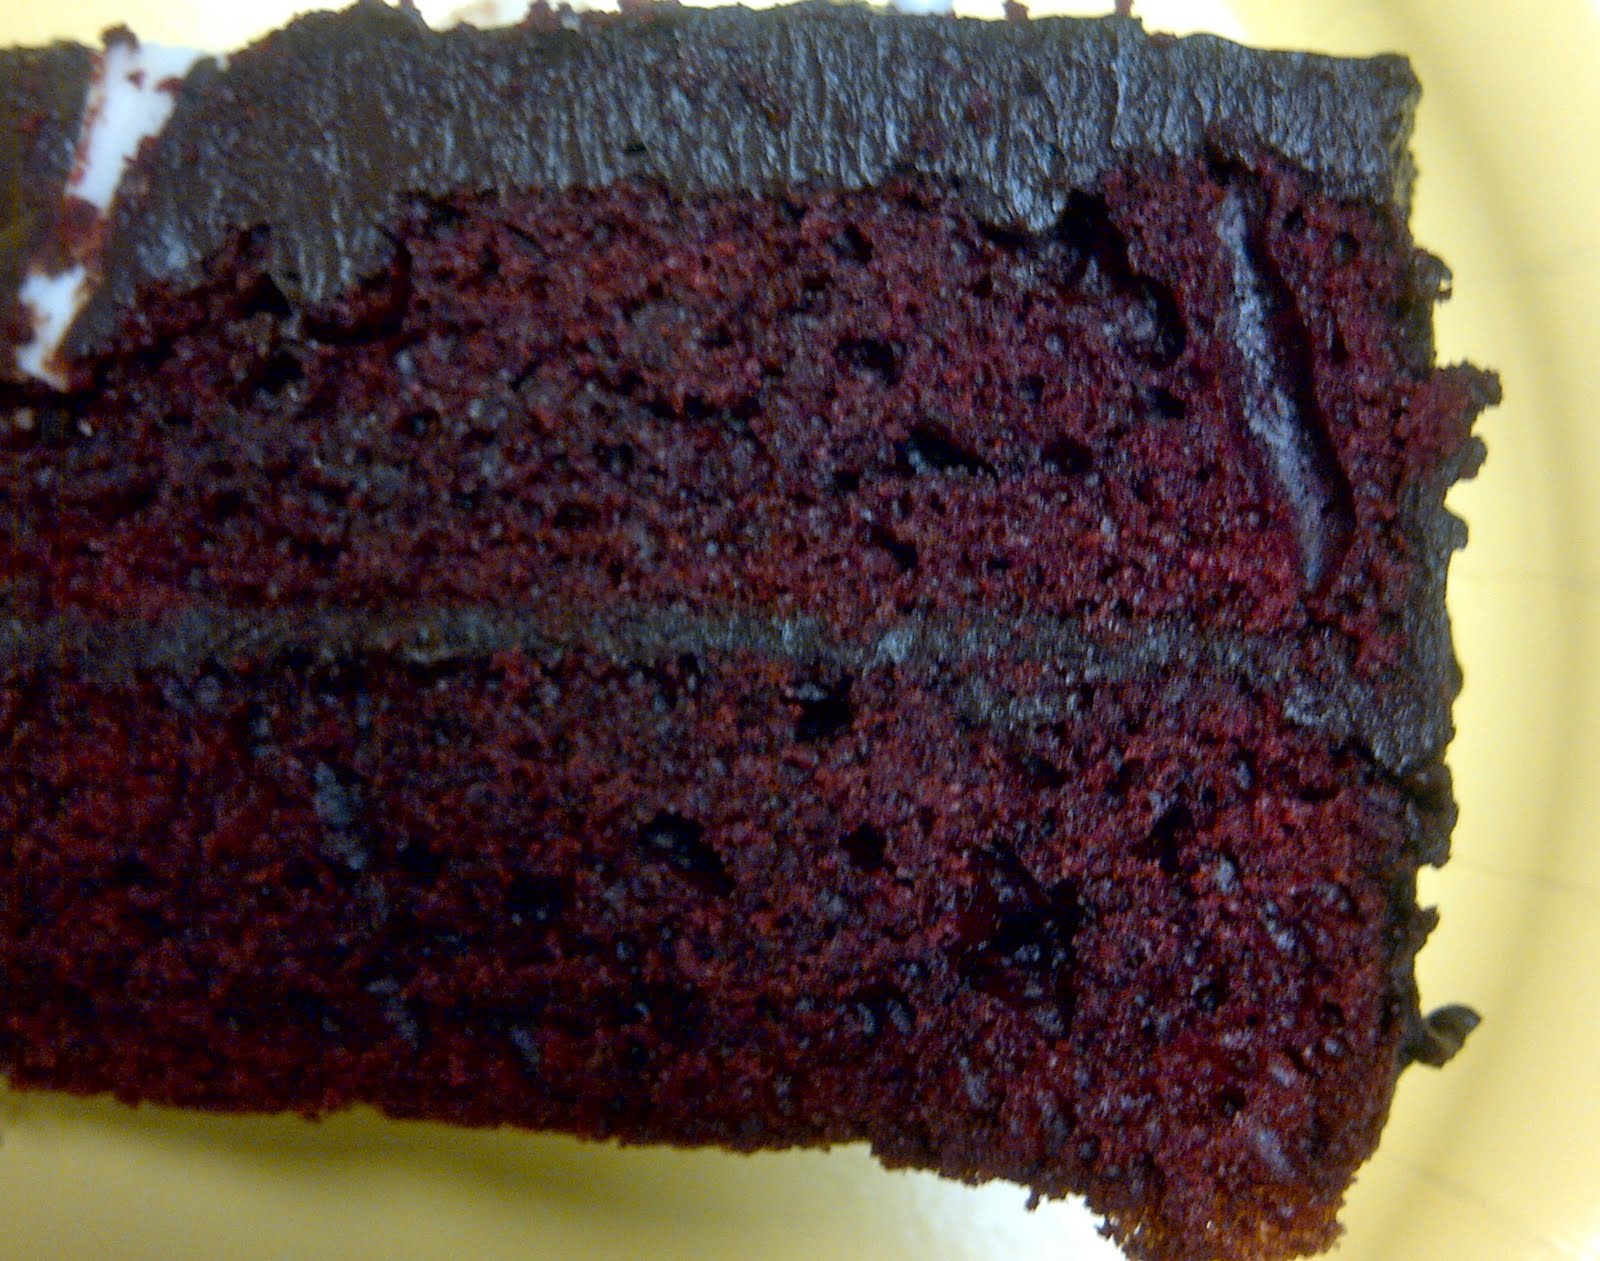 Chocolate's Not a Food Group?: Chocolate Ganache Red Velvet Cake